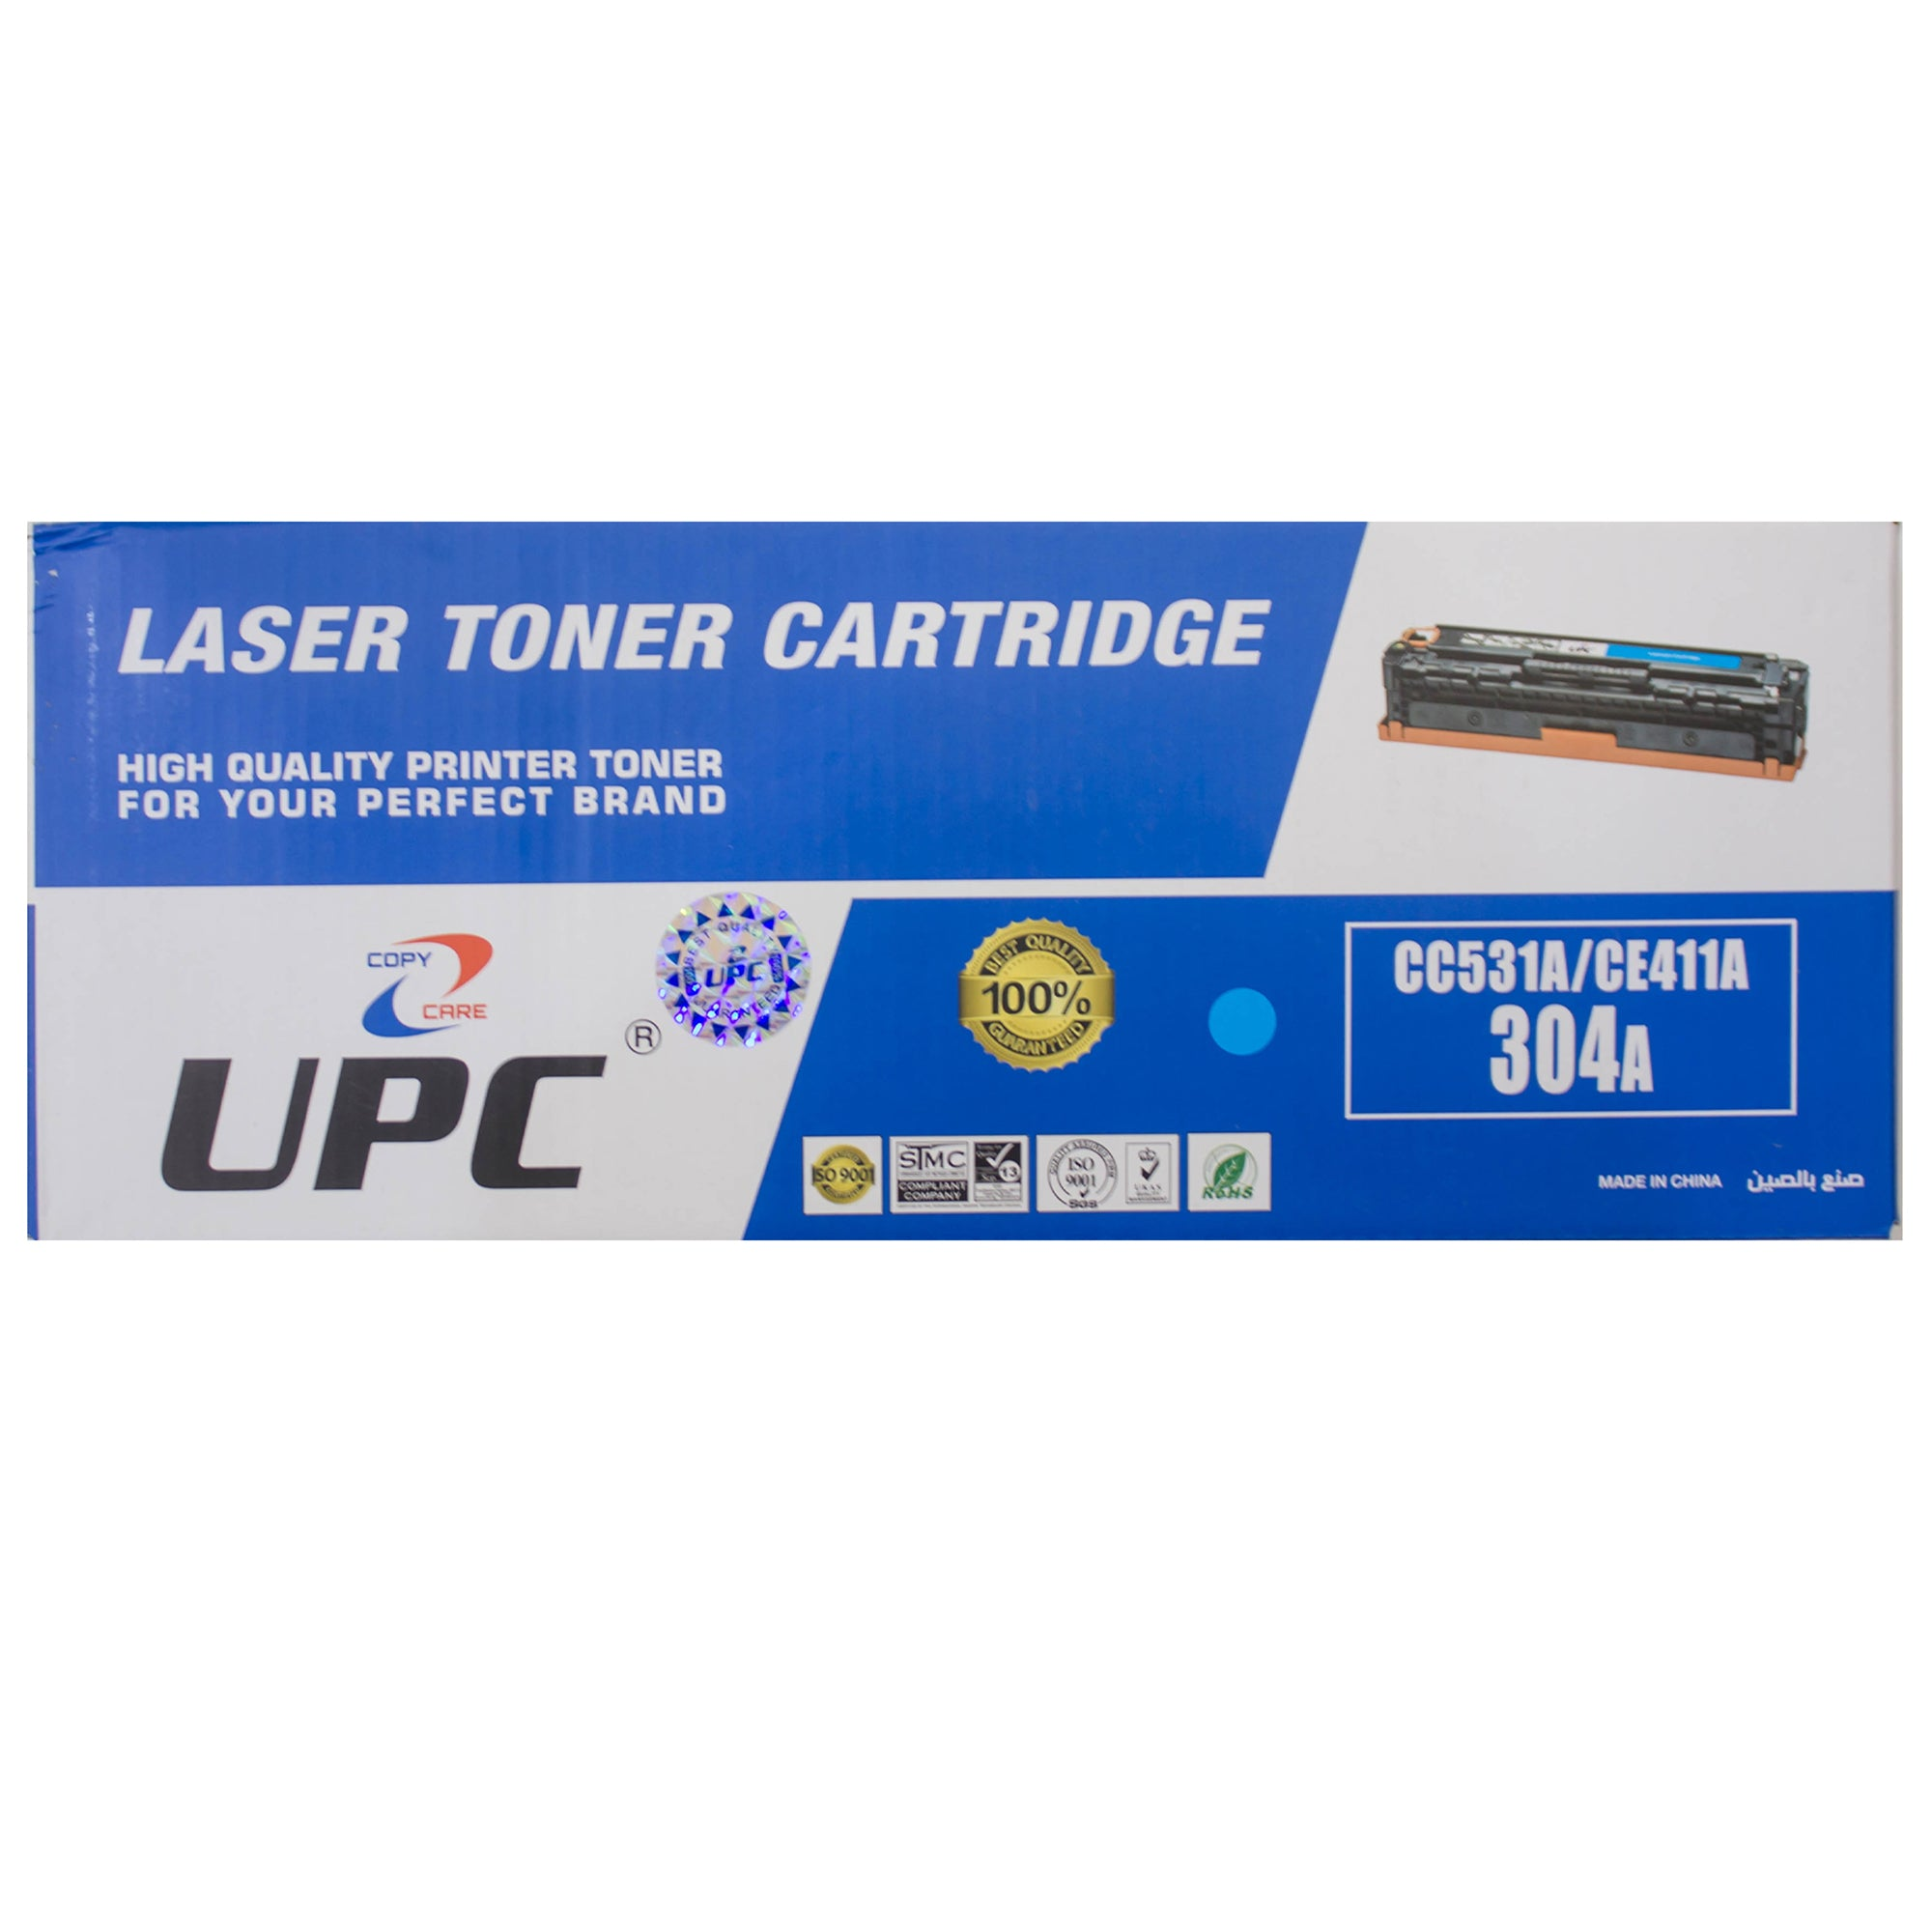 UPC 304A / 305A  Laser Toner Cartridge Cyan (CC531A / CE411A) Compatible with HP Laser Printers